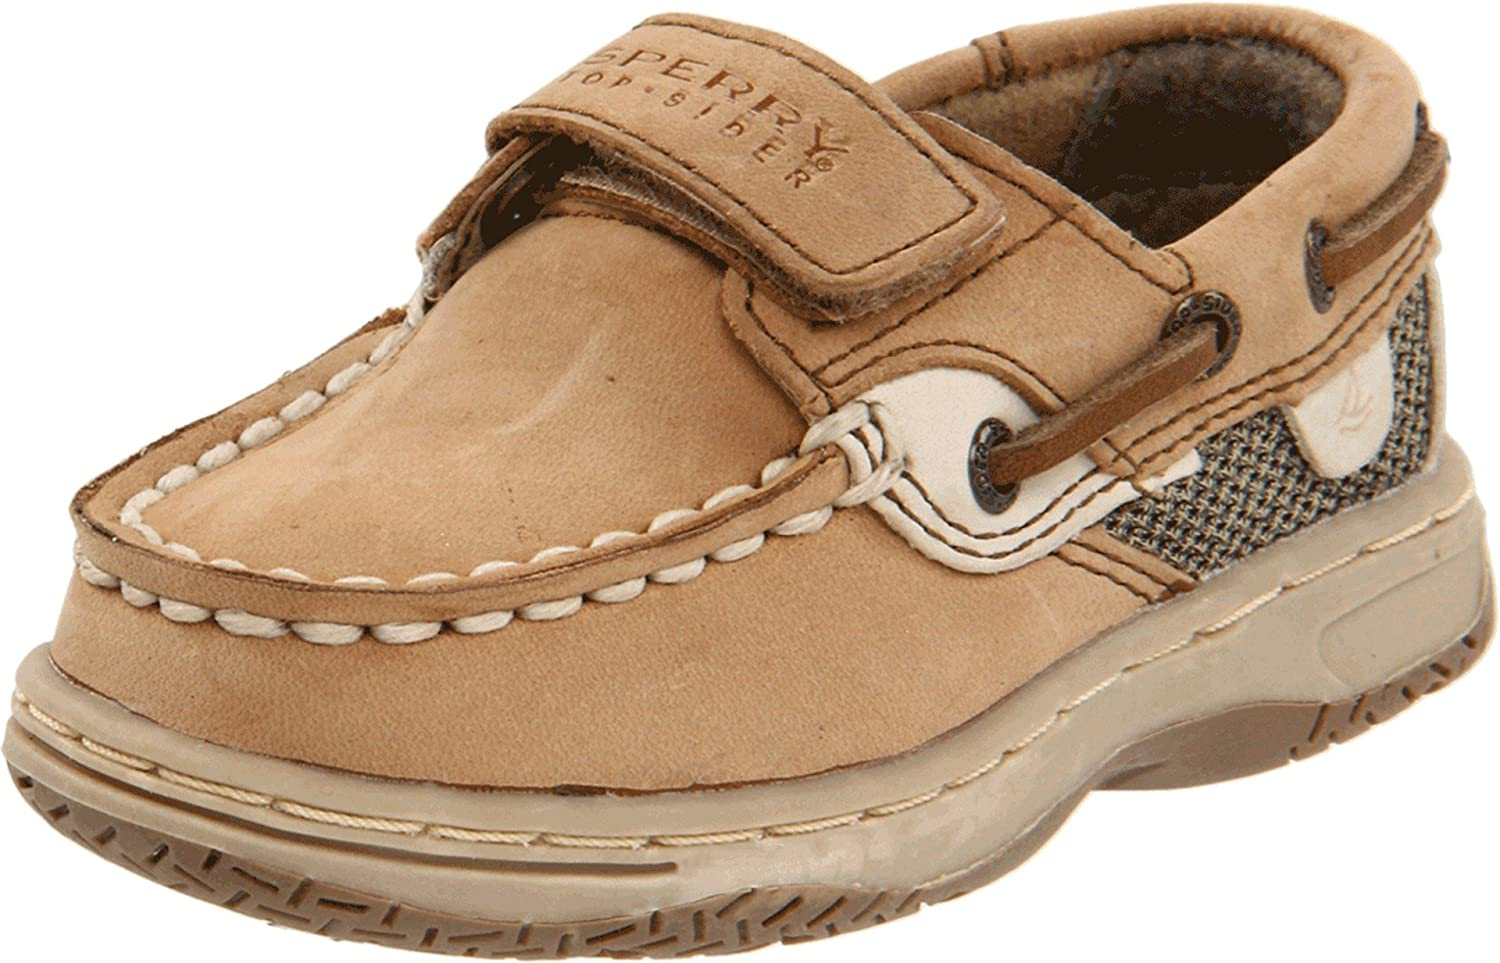 Sperry Shoes Toddler Girls Tan Brown Top-Sider Leather Animal Print, size M. Shoes are in very good pre-owned condition. Some marks on top of right shoe (see pics).